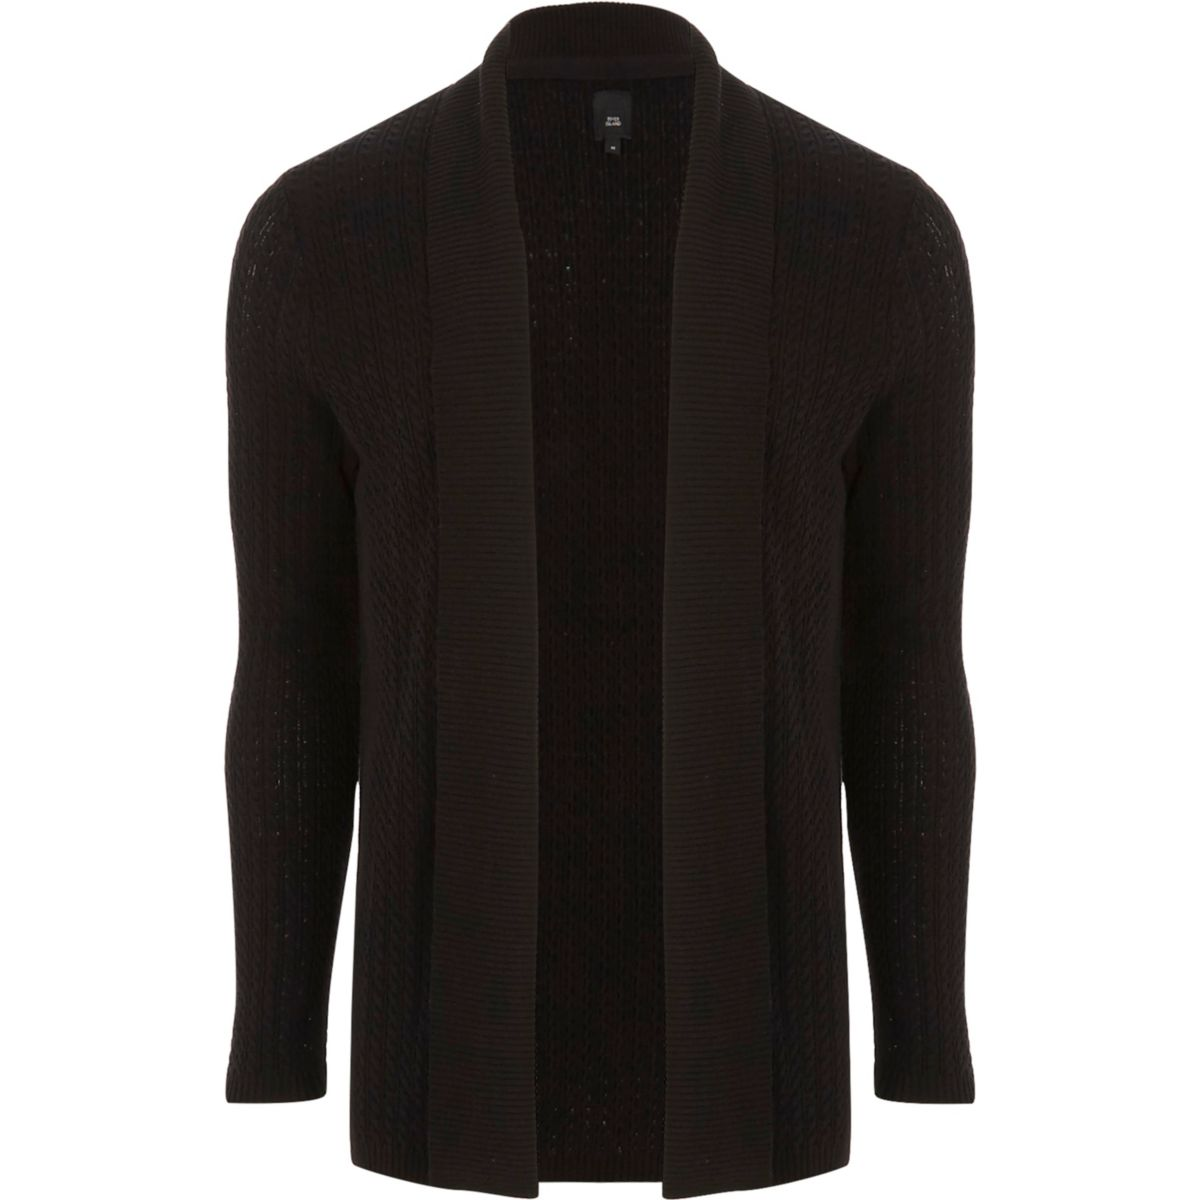 Men Jumpers & cardigans | River Island